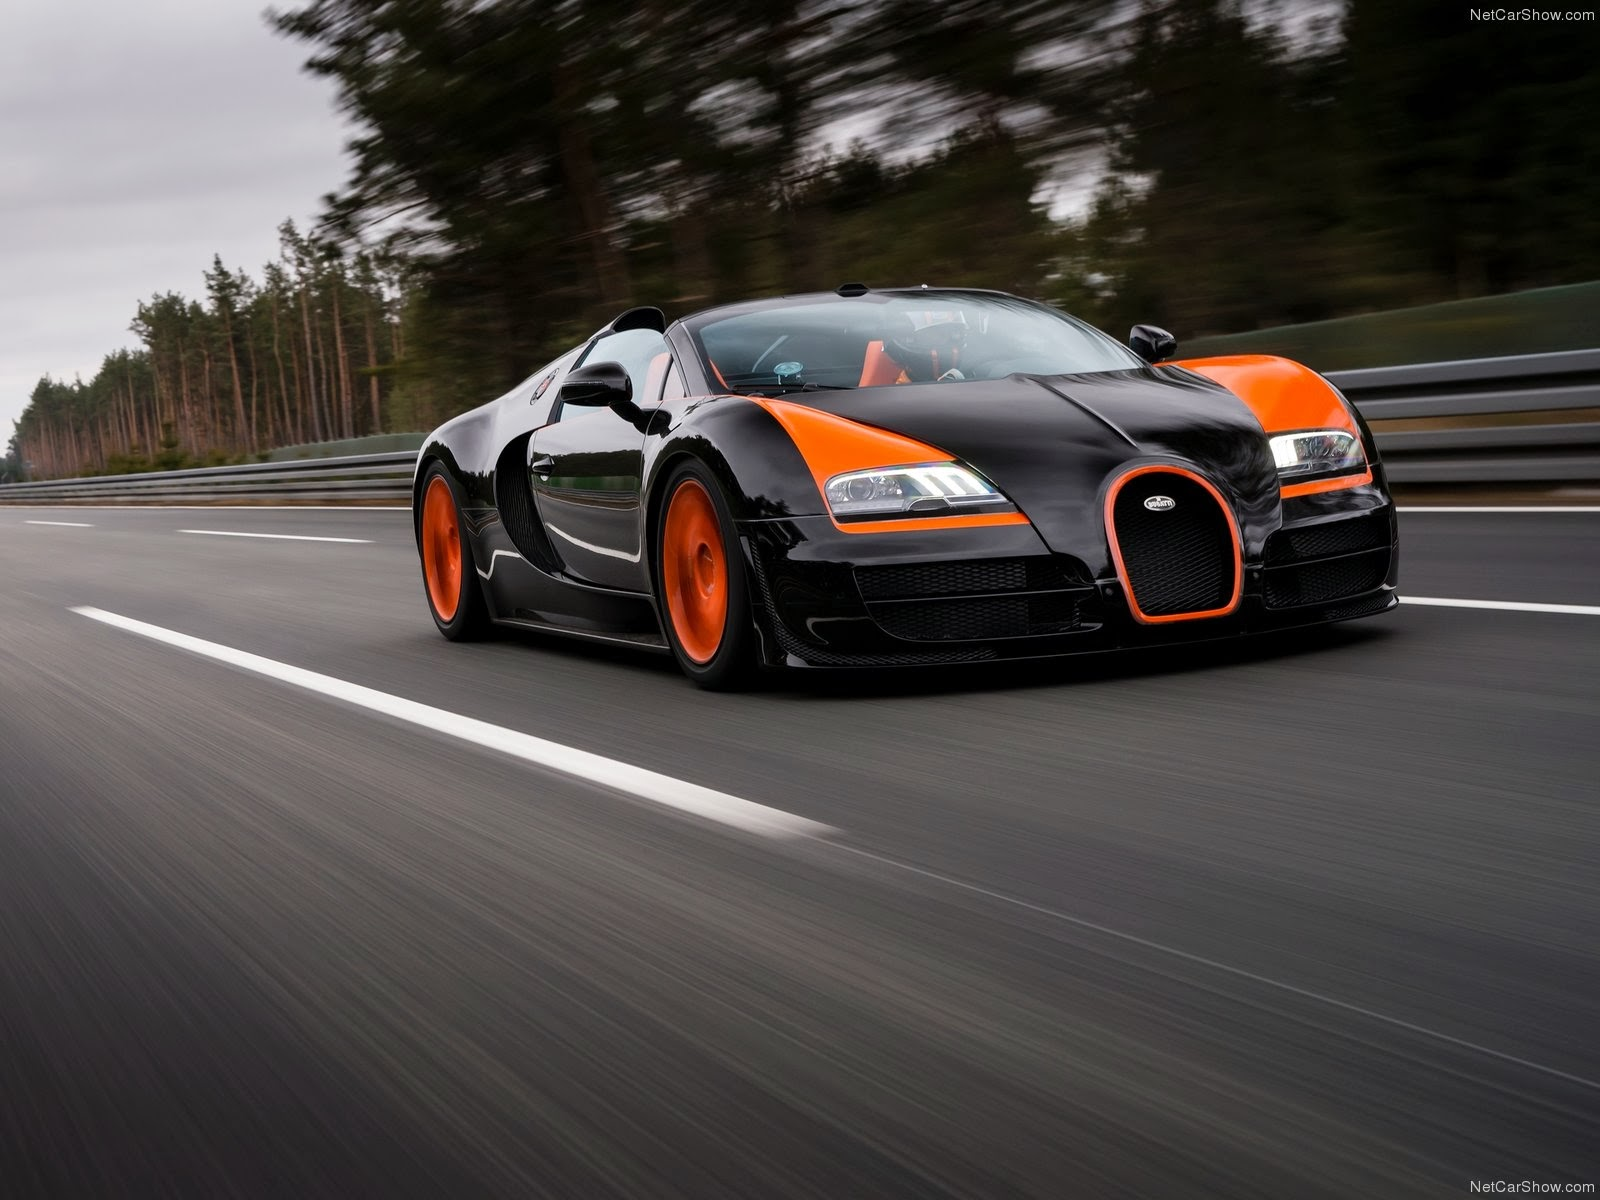 HD Cars Wallpapers: Bugatti Veyron HD Wallpapers